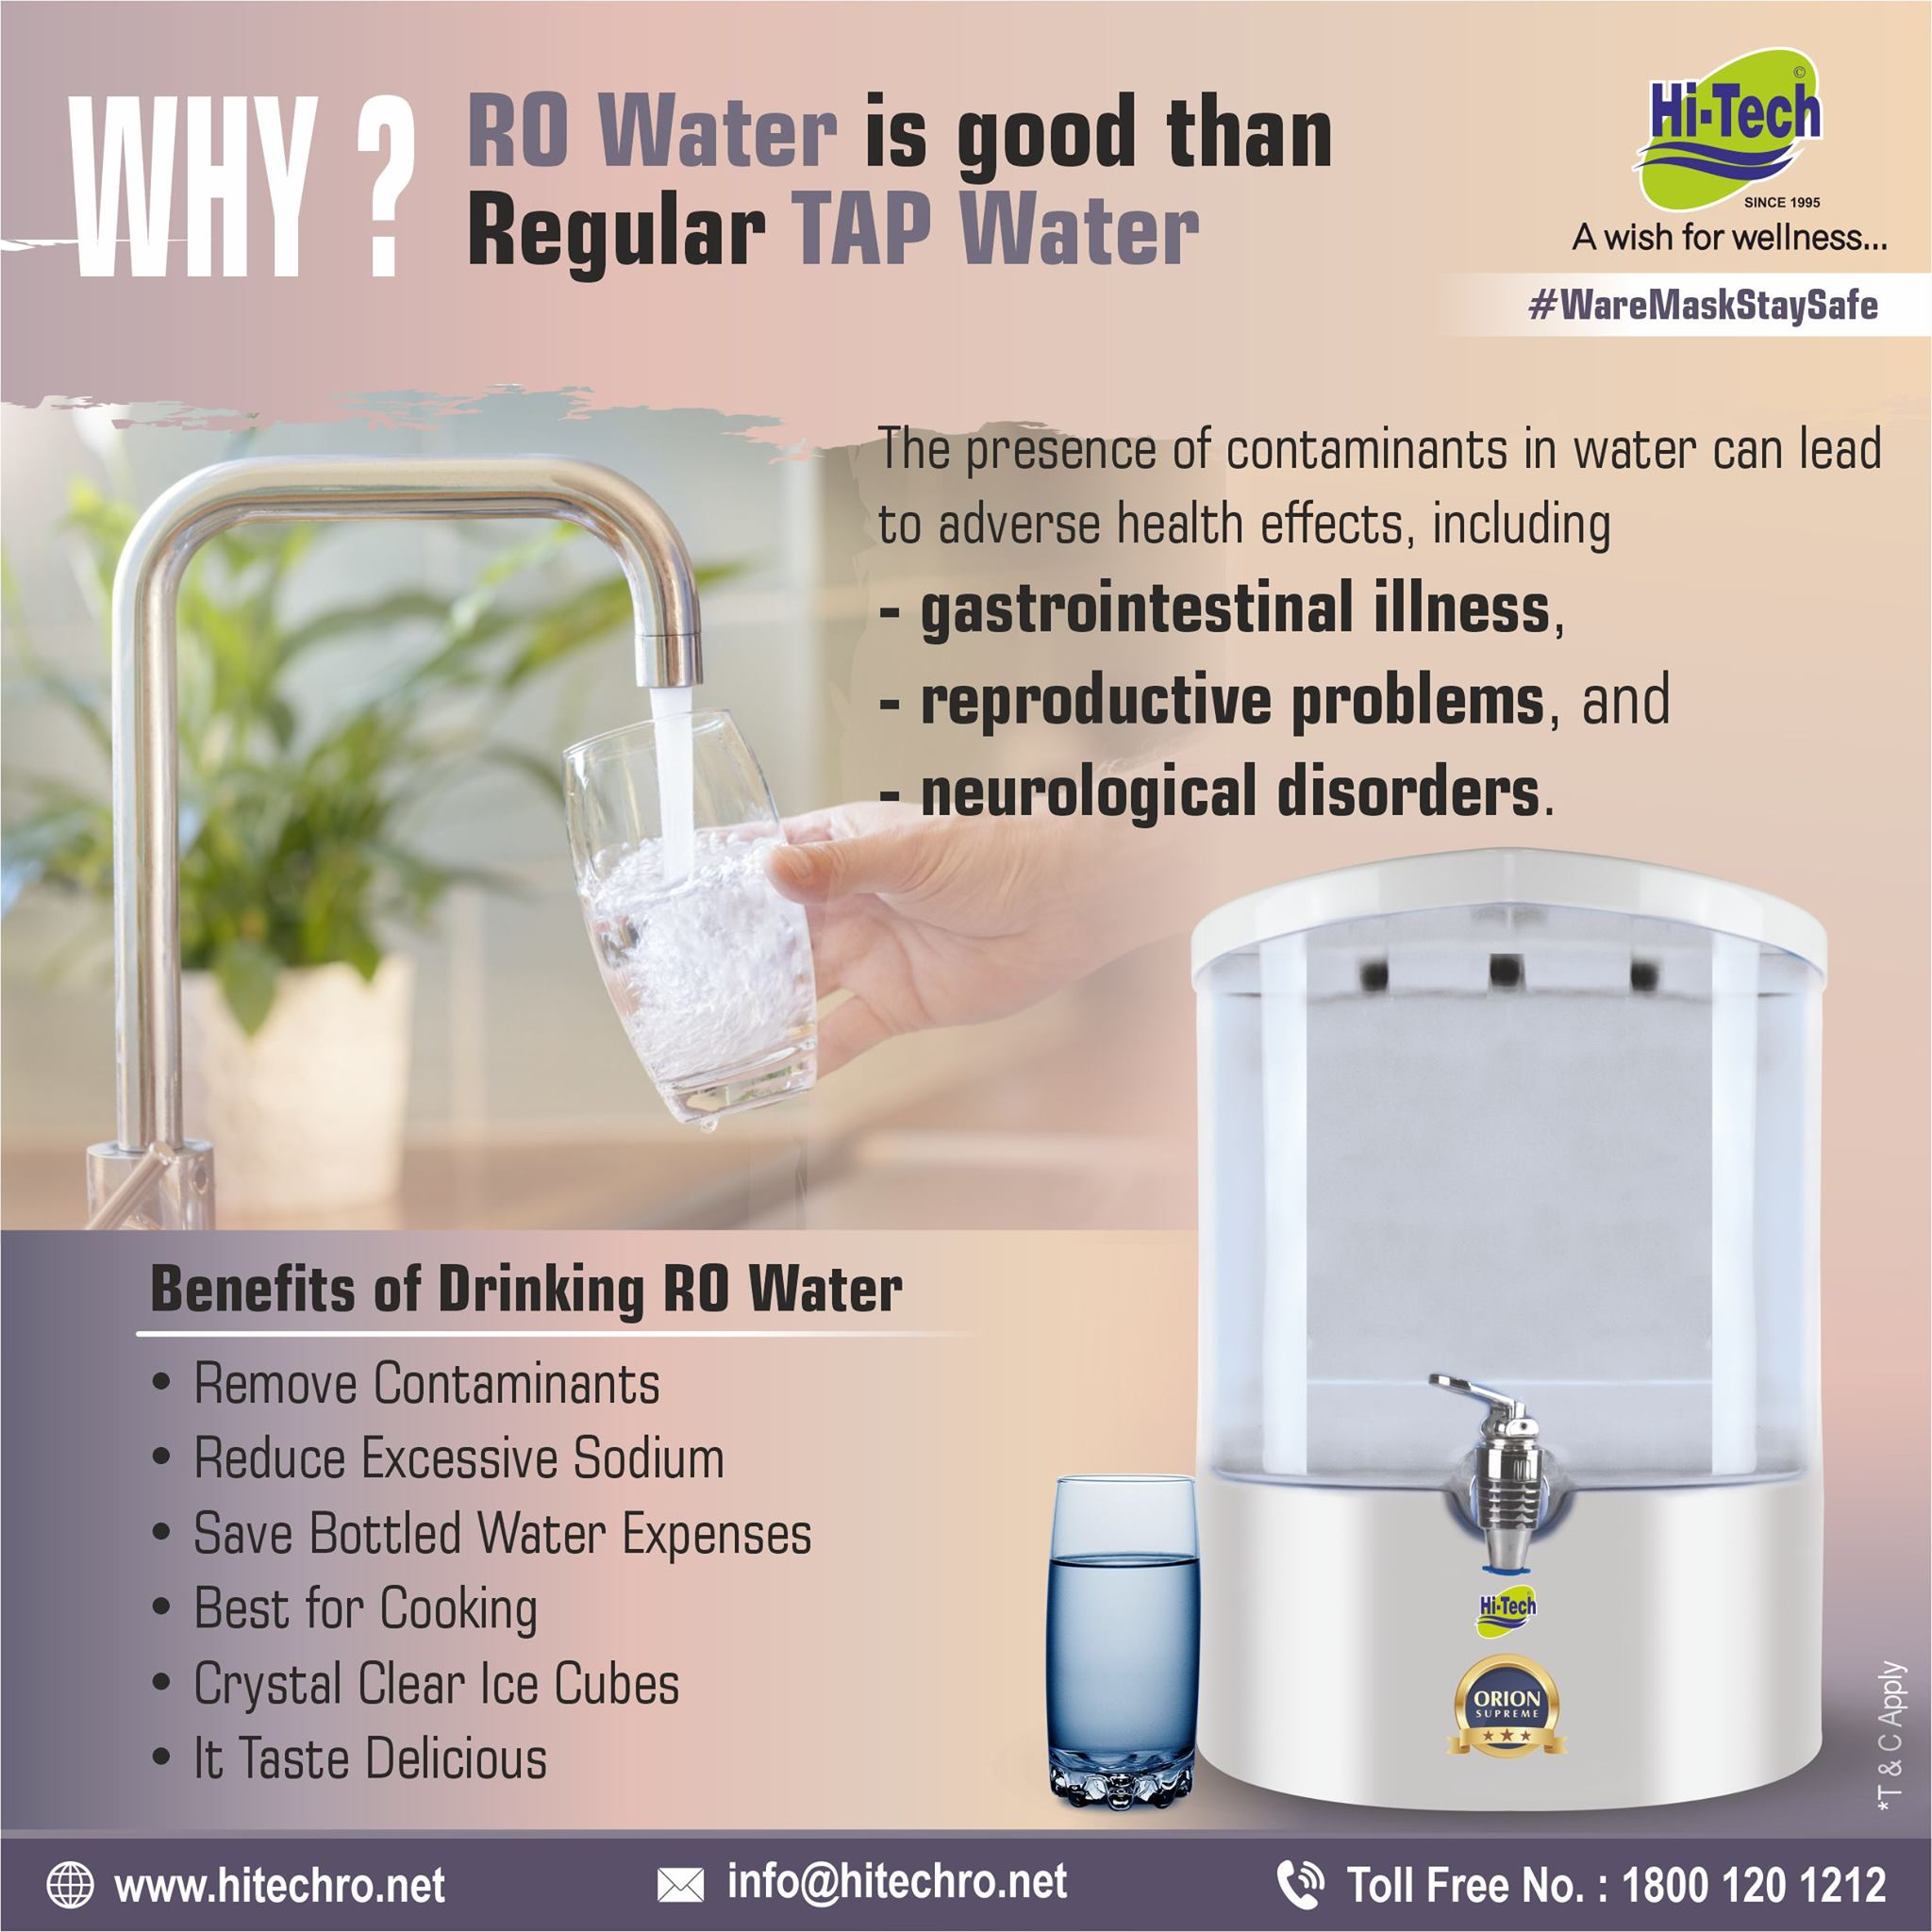 RO Water is Good for Health